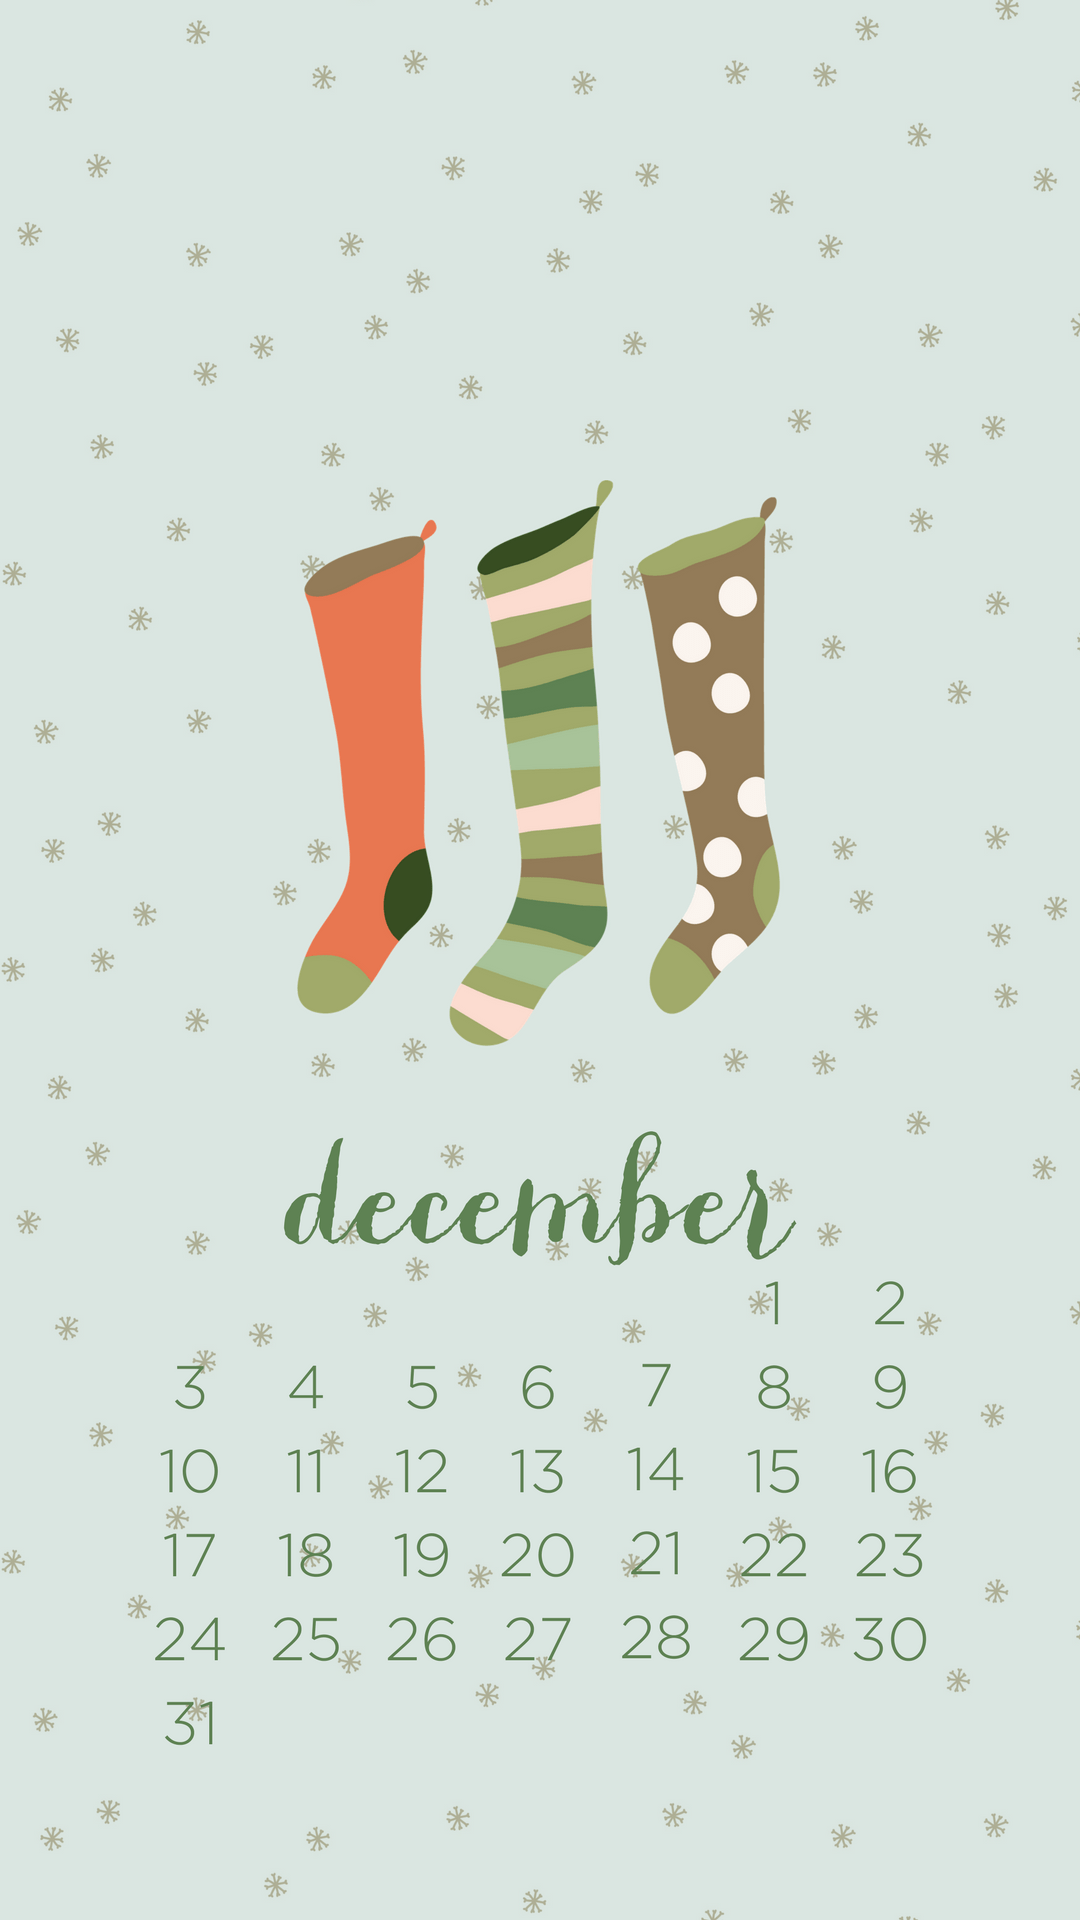 December 2019 iPhone Wallpaper Calendar